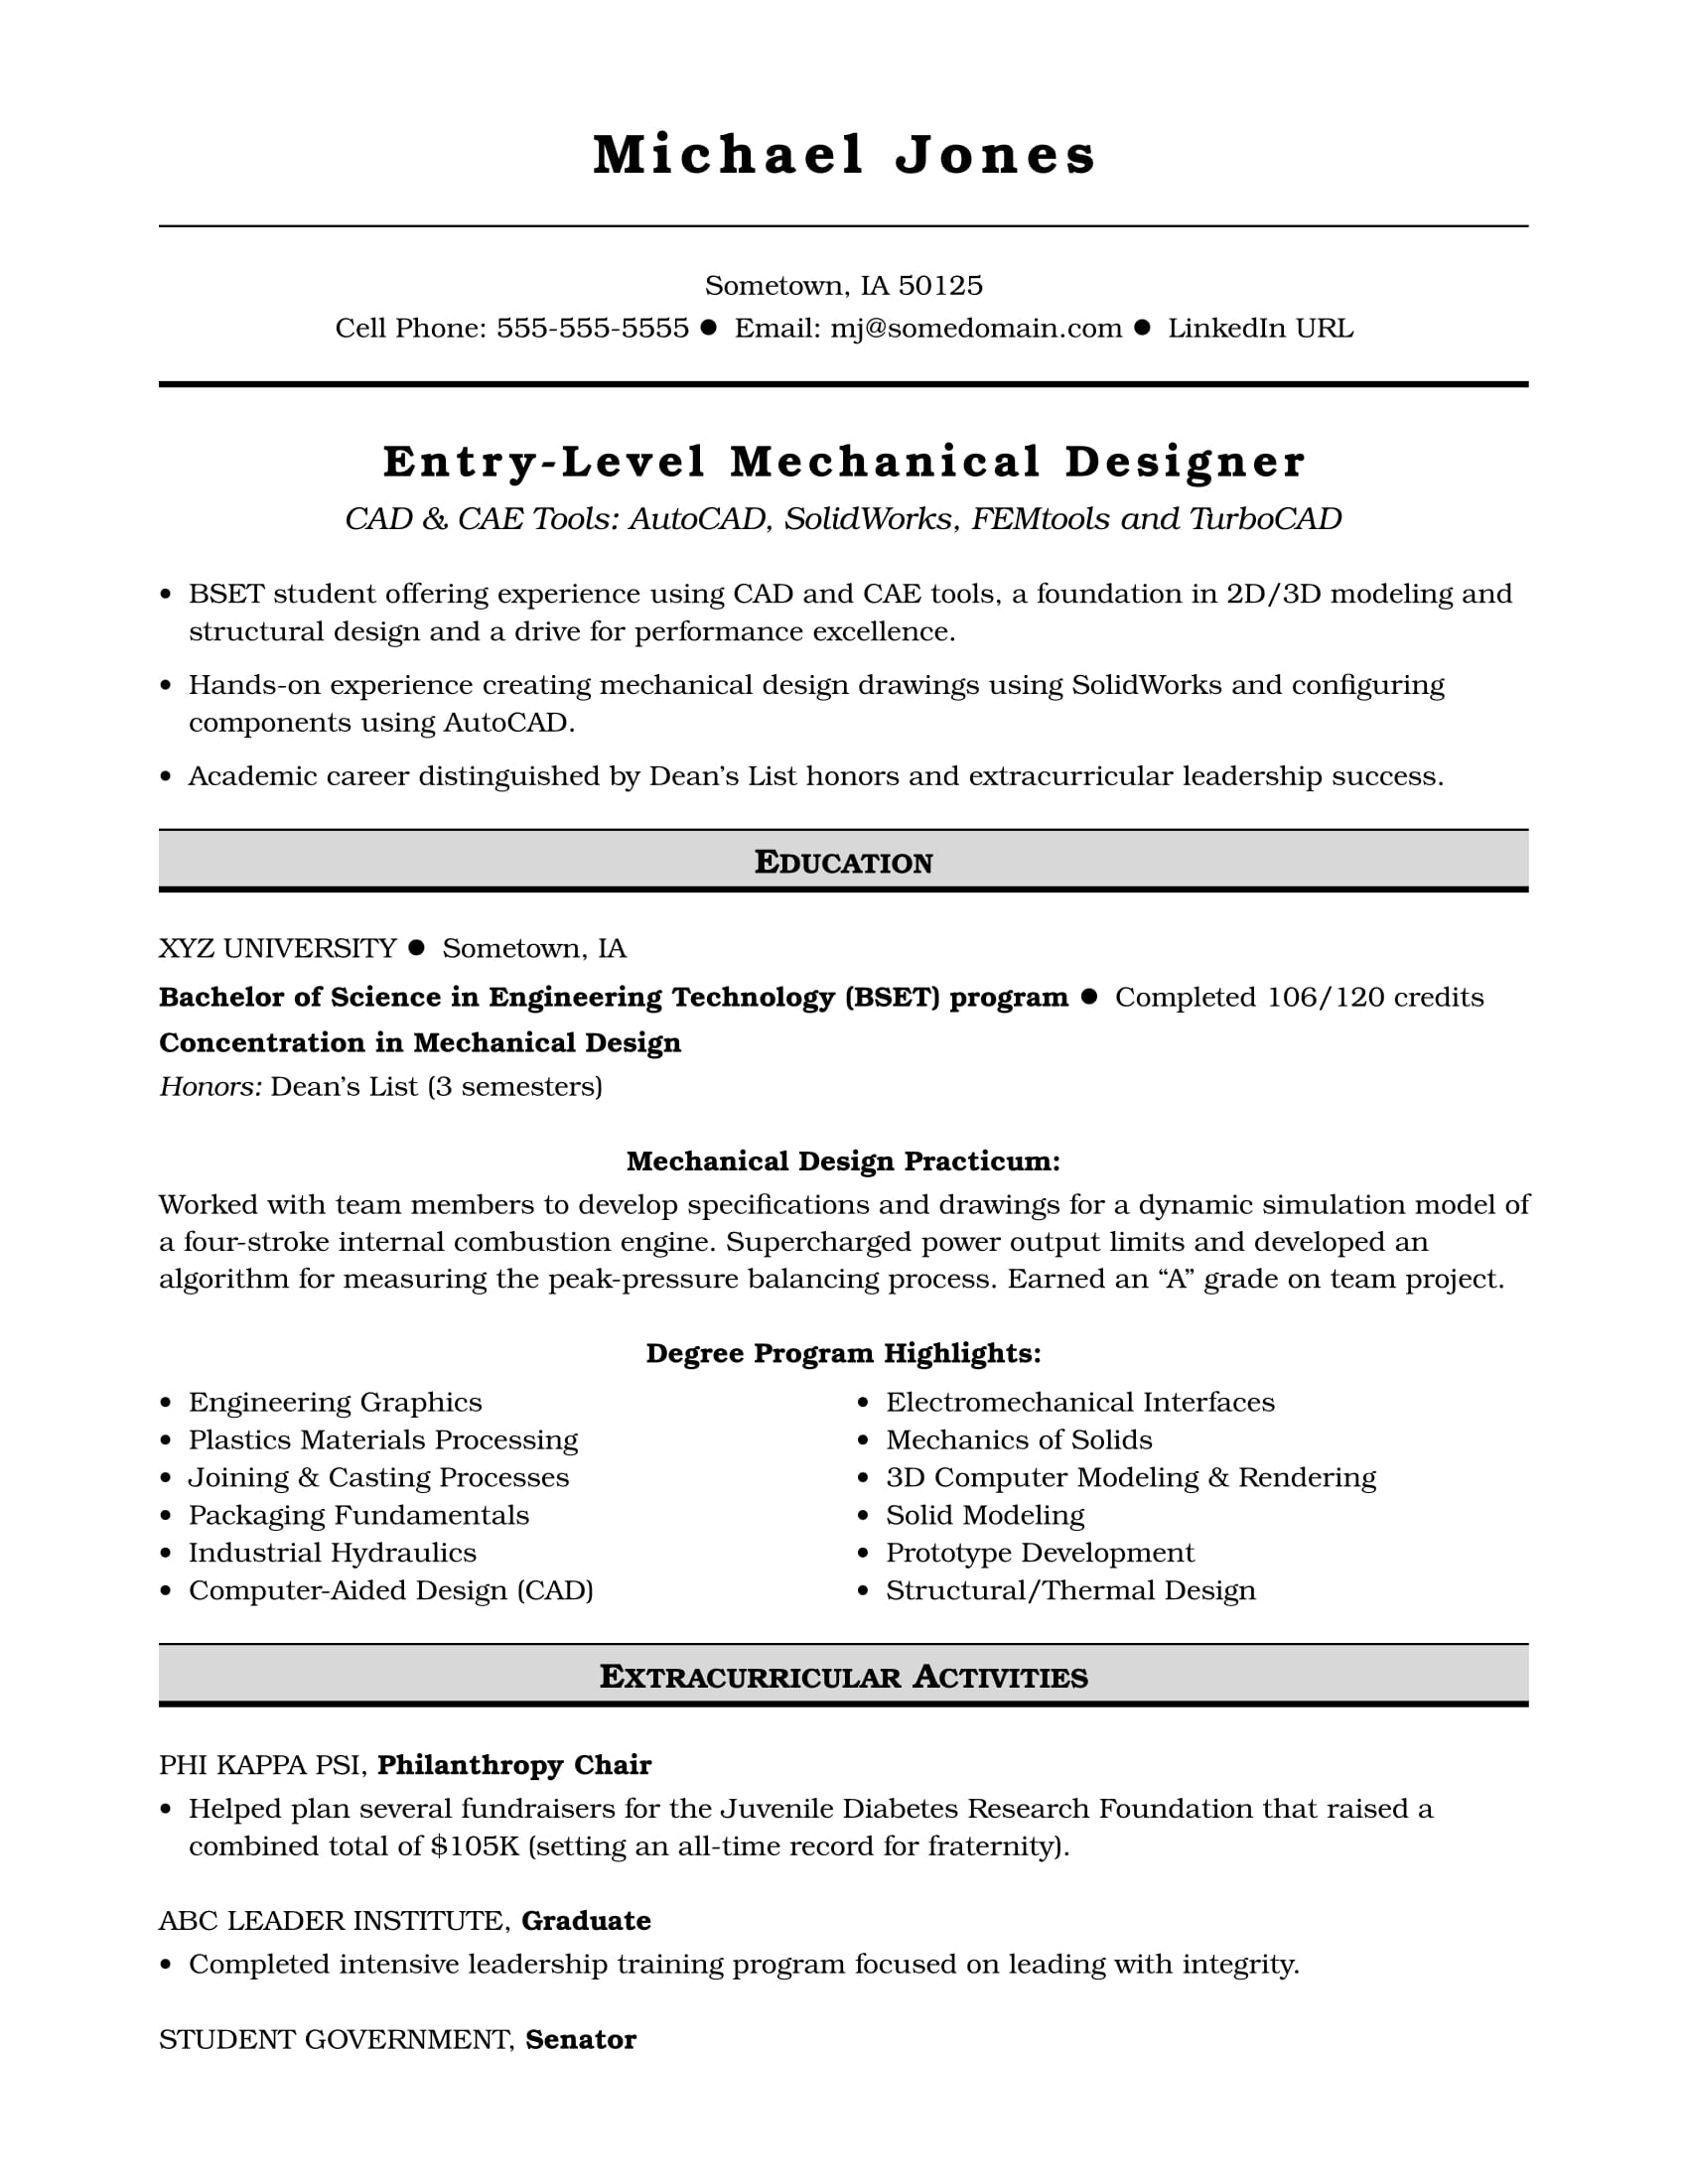 Sample Resume for an Entry-Level Mechanical Designer